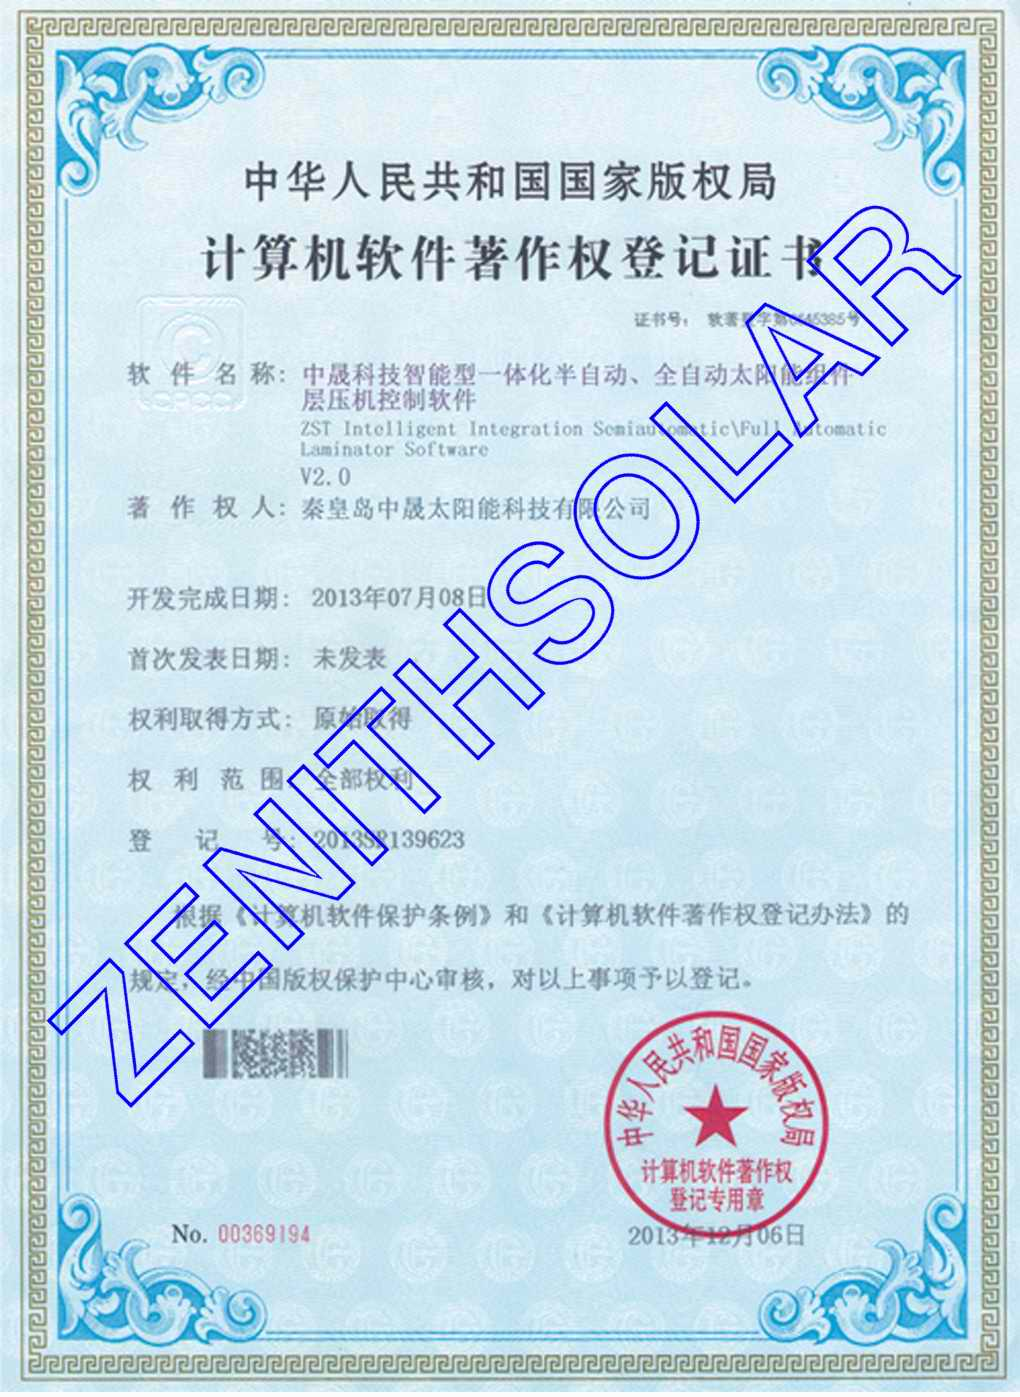 Software copyright certificate